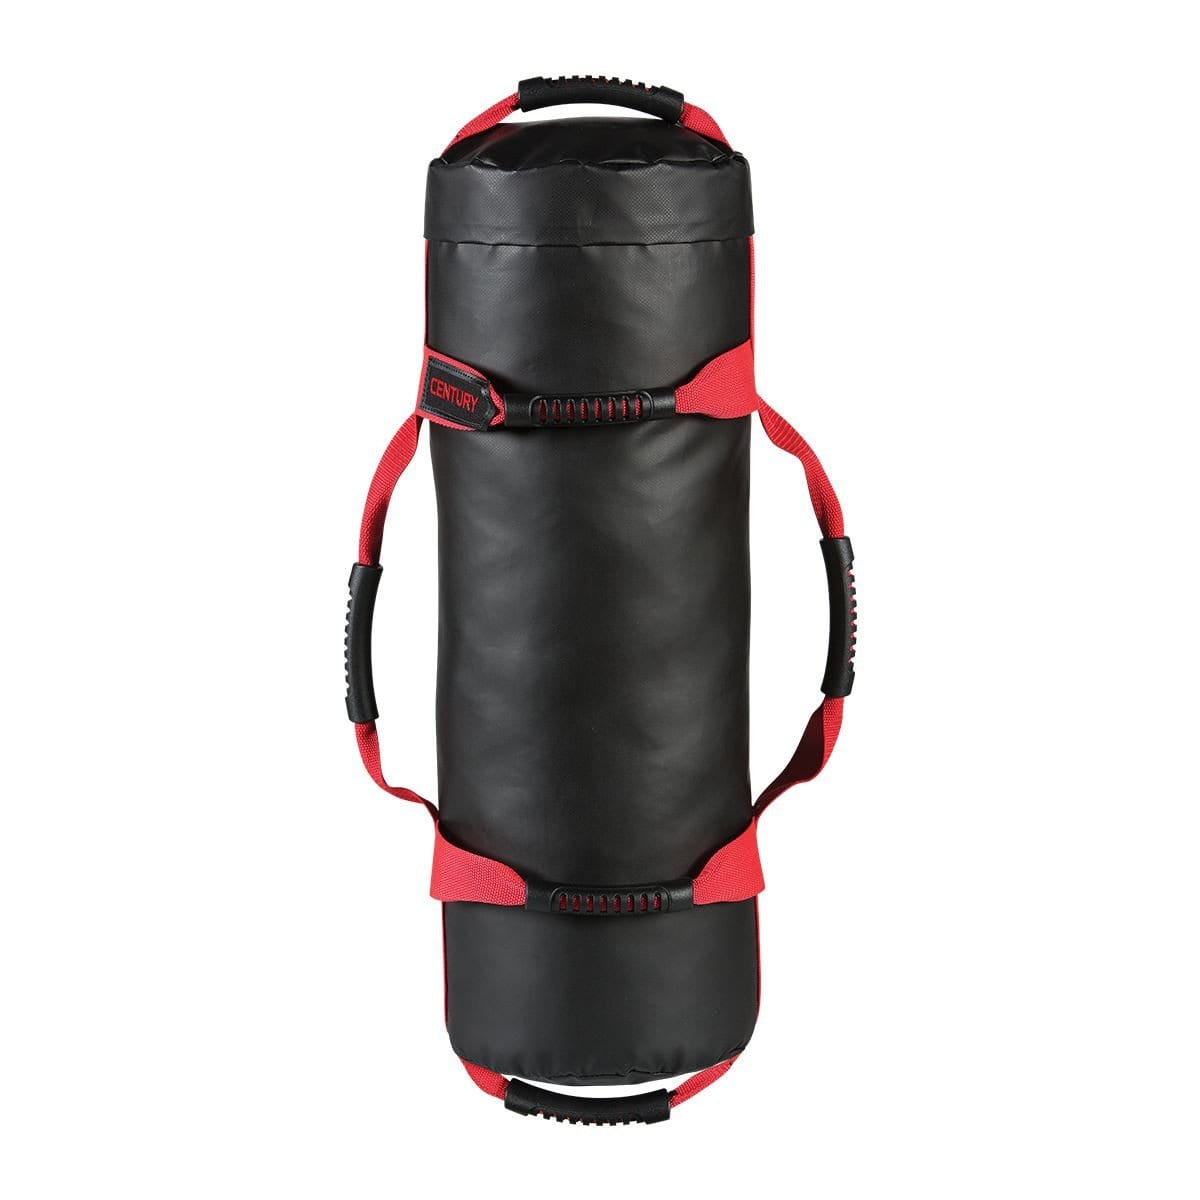 CENTURY  Weighted Fitness Bag